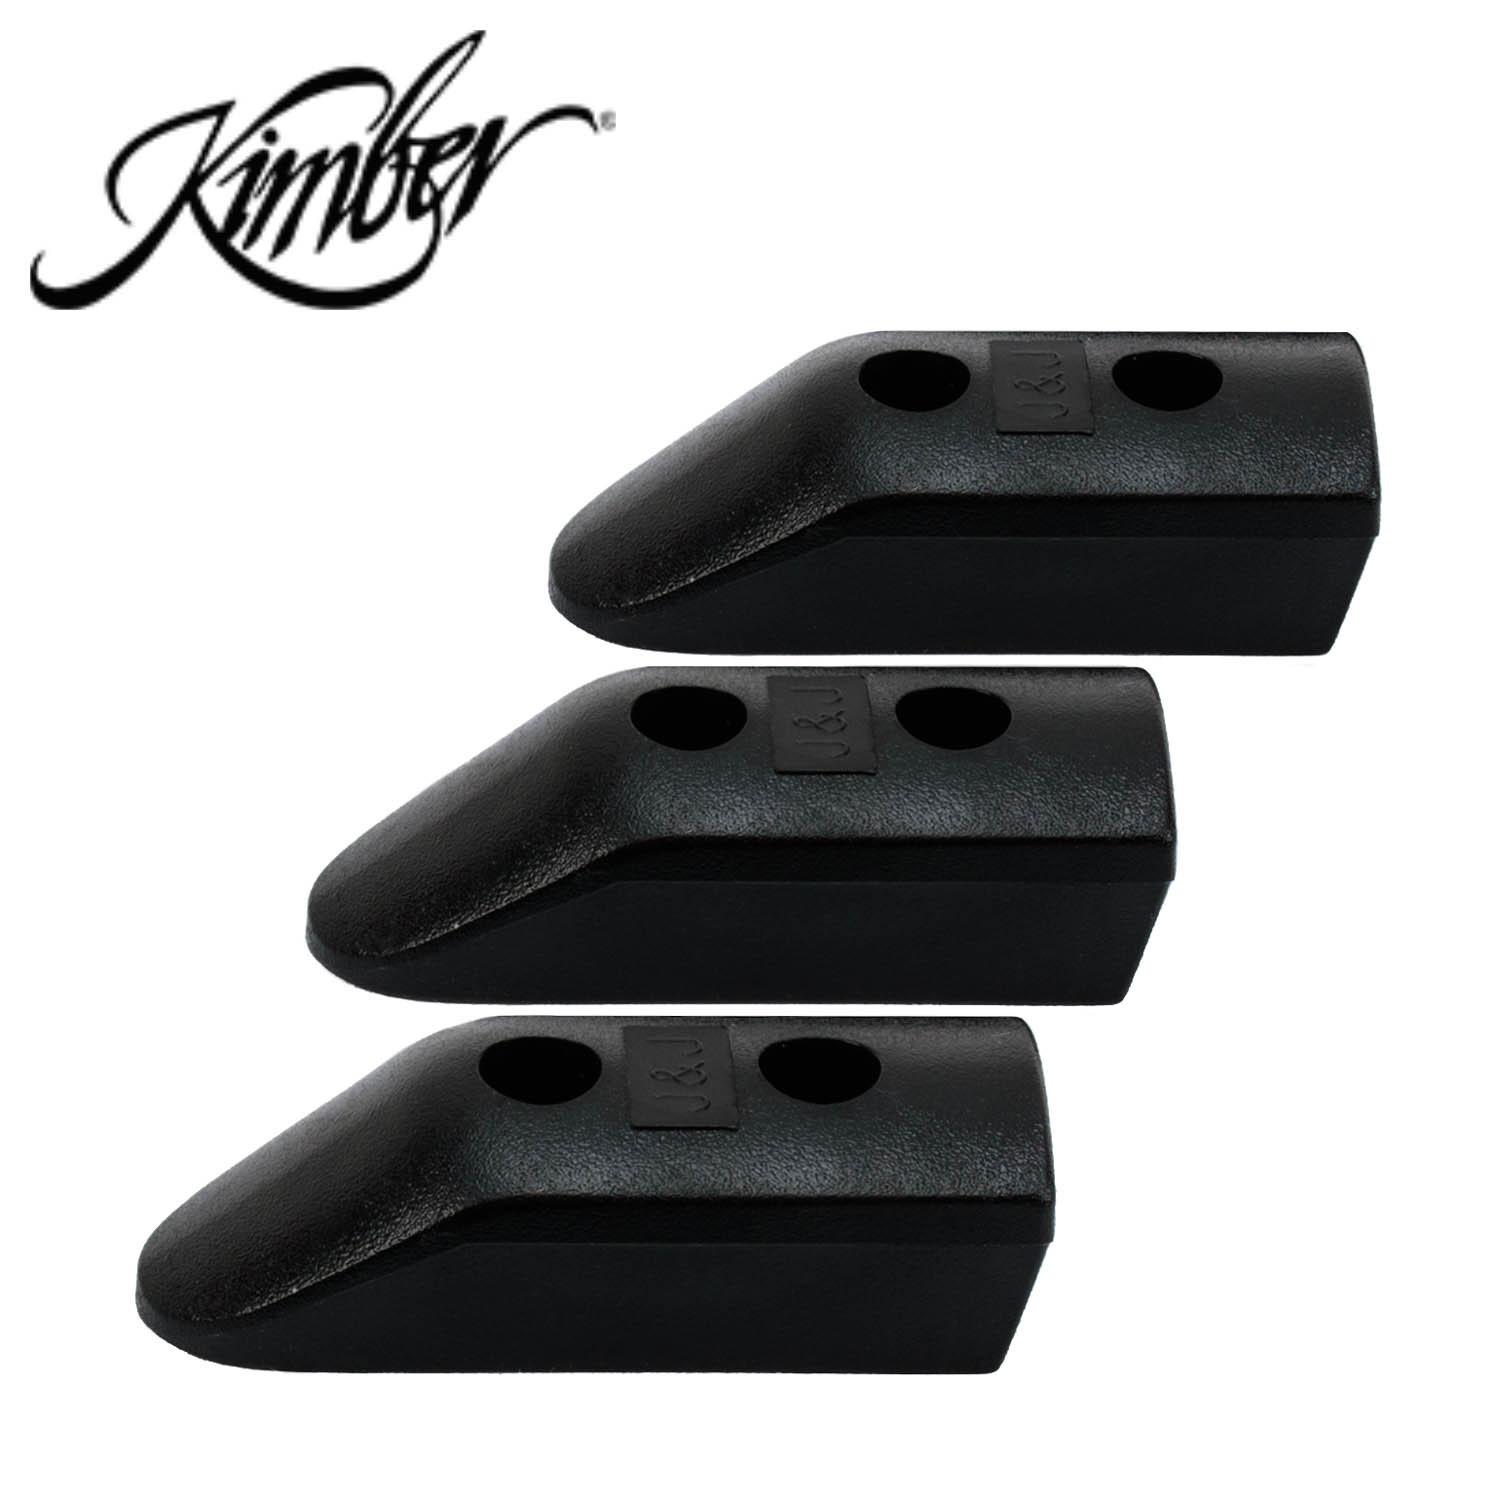 Kimber 1911, Extended Magazine Base Pads, Black, Set of 3: Midwest Gun Works